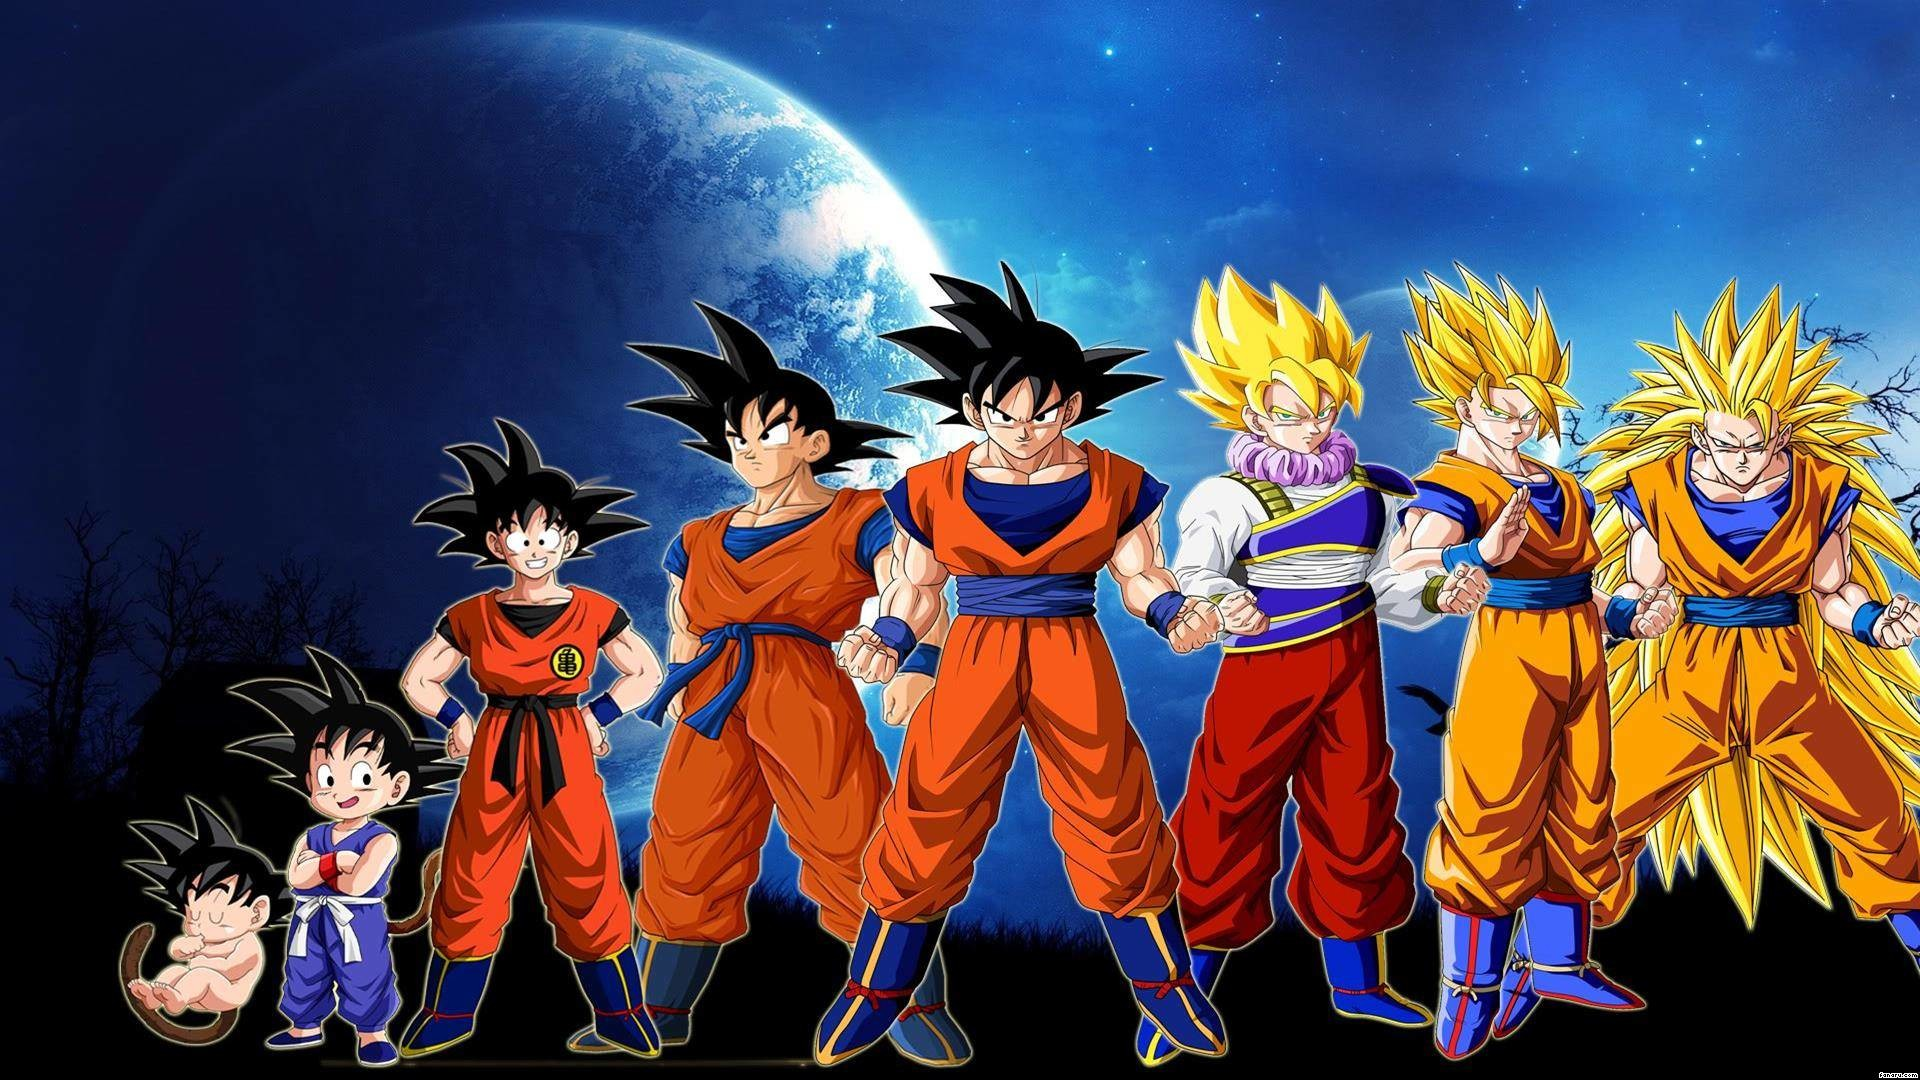 Dragon Ball Z Goku Super Saiyan 3 Wallpaper Engine Live